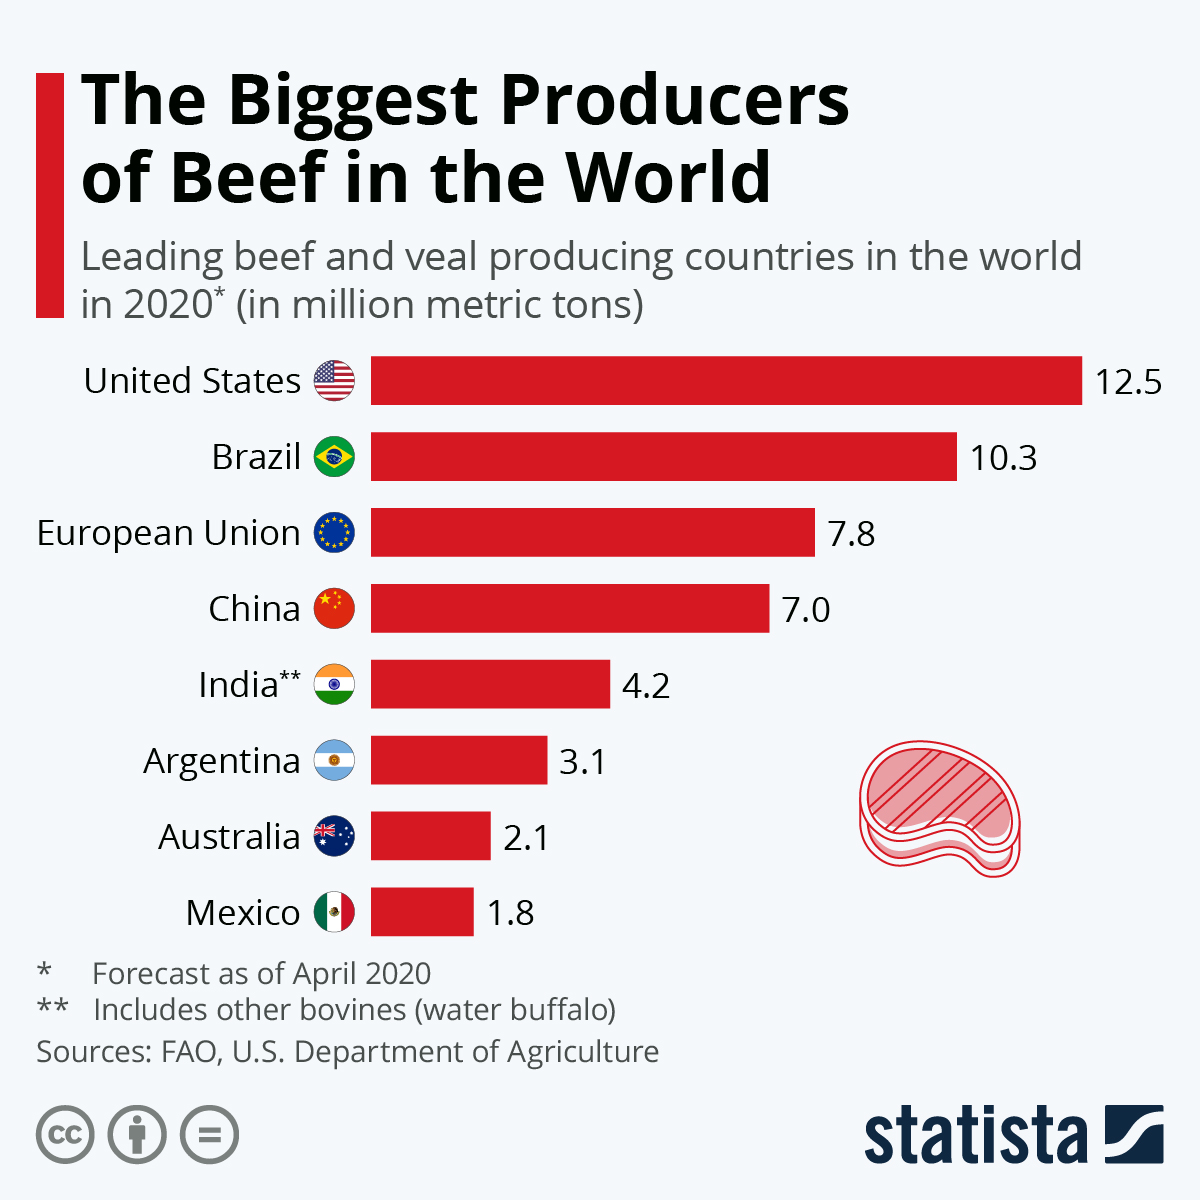 The Biggest Producers of Beef in the World #infographic